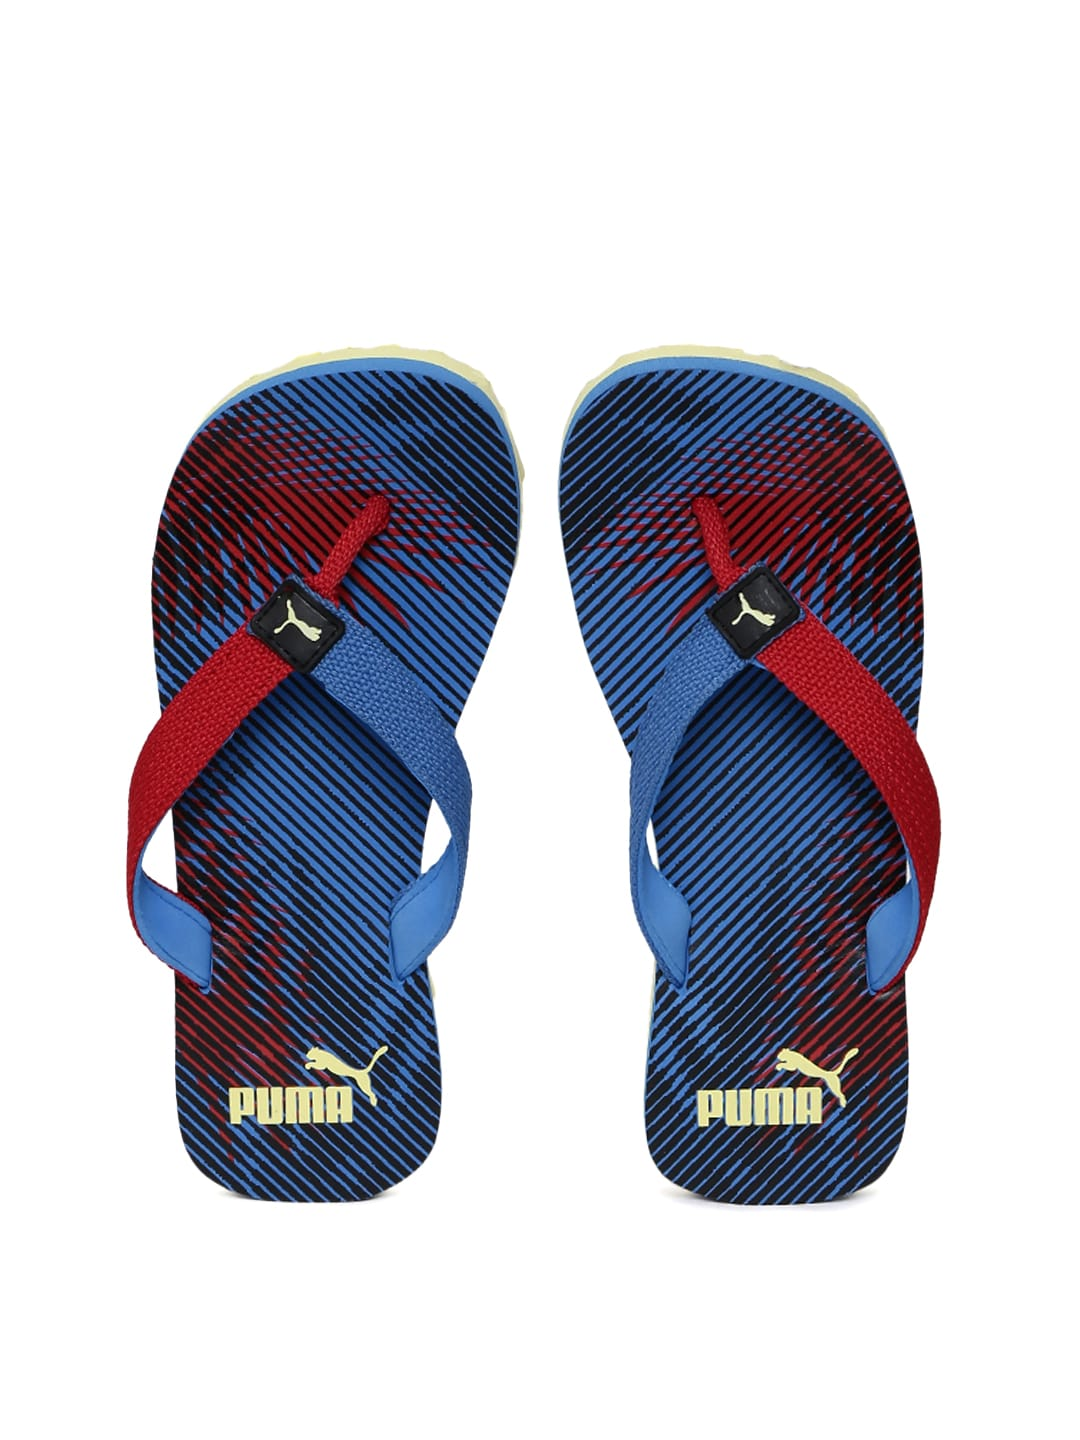 13f468d75f7d55 Fabric Footwear - Buy Fabric Footwear online in India